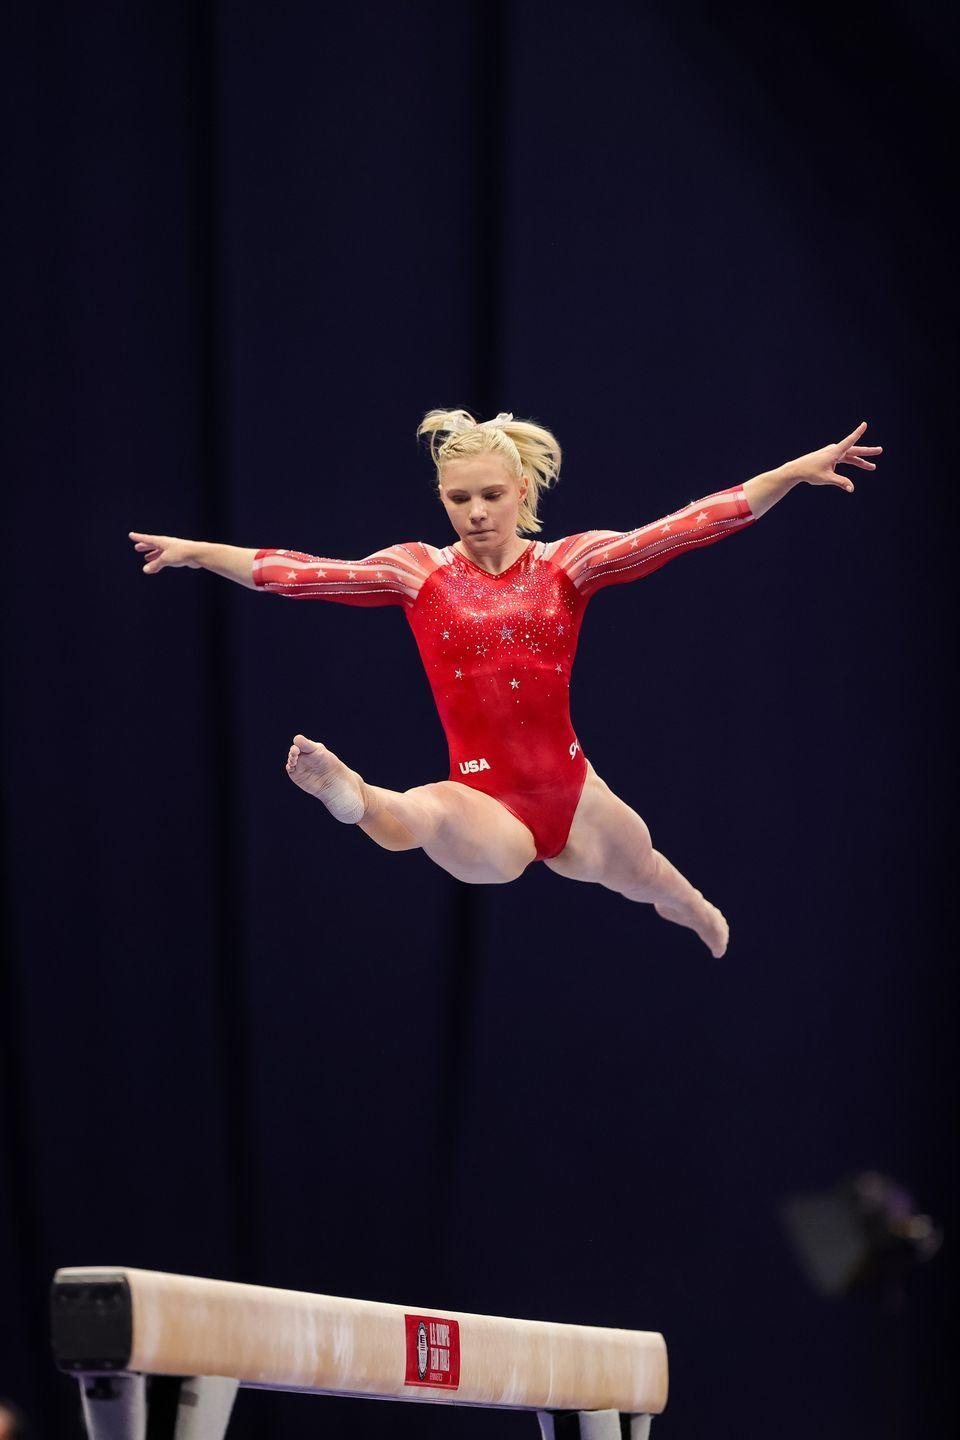 <p><strong>Age: </strong>21</p><p><strong>Hometown: </strong>Phoenix, Arizona</p><p>Carey is also competing in the Games as an individual, though ended up subbing in for Biles in the all-around. She's known for her floor routine, which earned her a gold medal in the individual event competition. Carey previously earned gold as part of the U.S. team at the 2019 Gymnastics World Championships. </p>